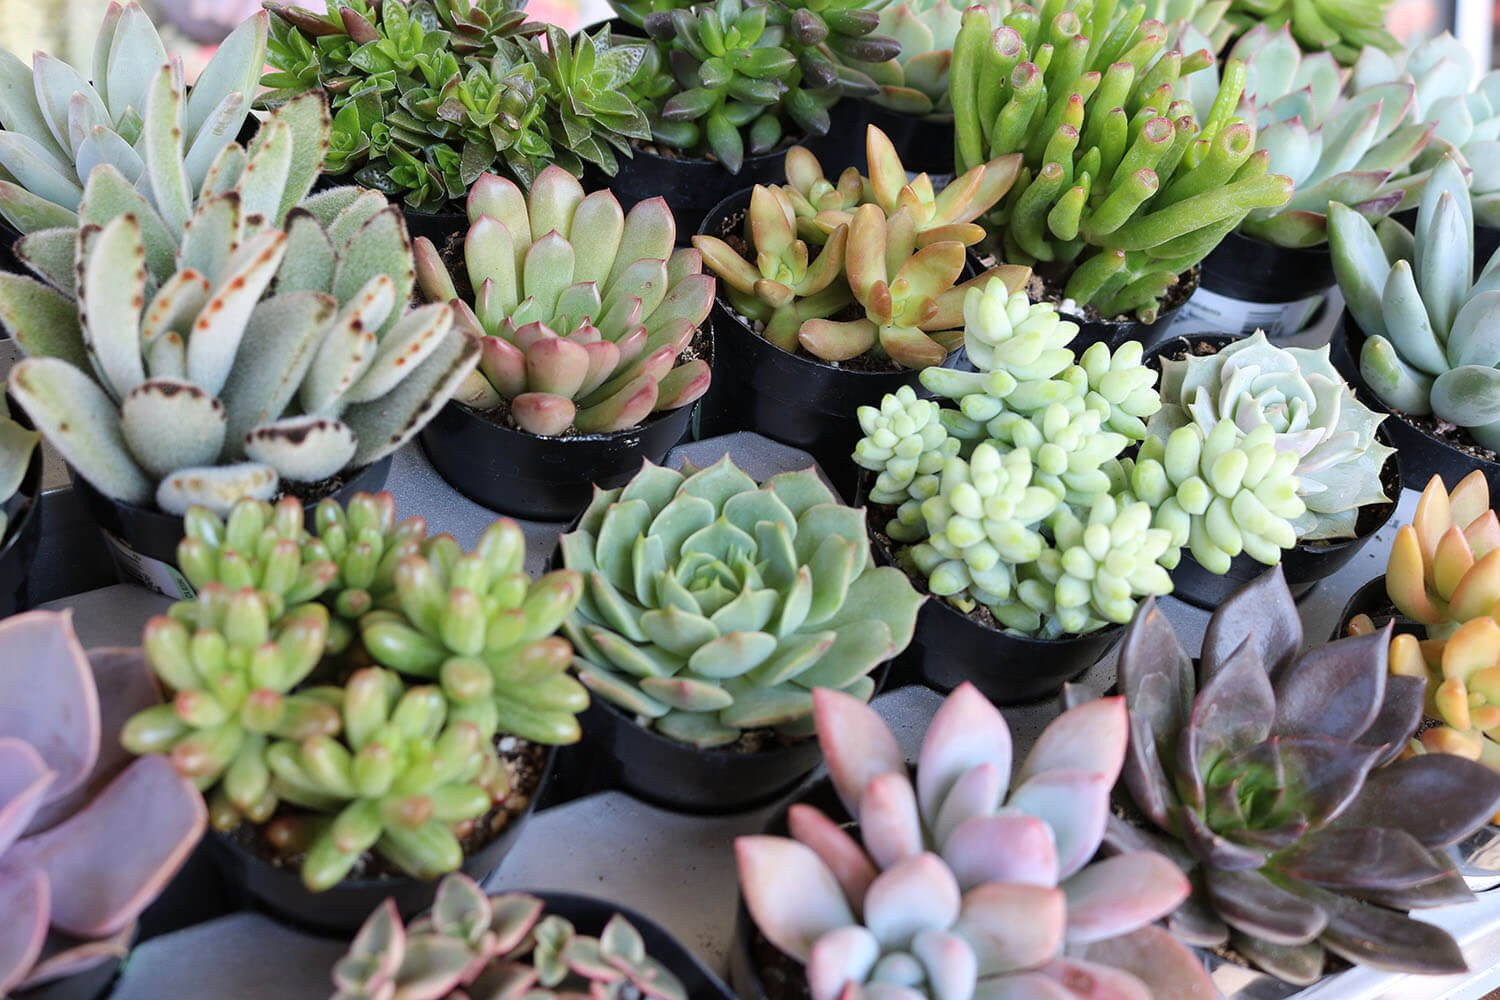 Succulents are perfect plants to have in your home year-round for some fresh decor